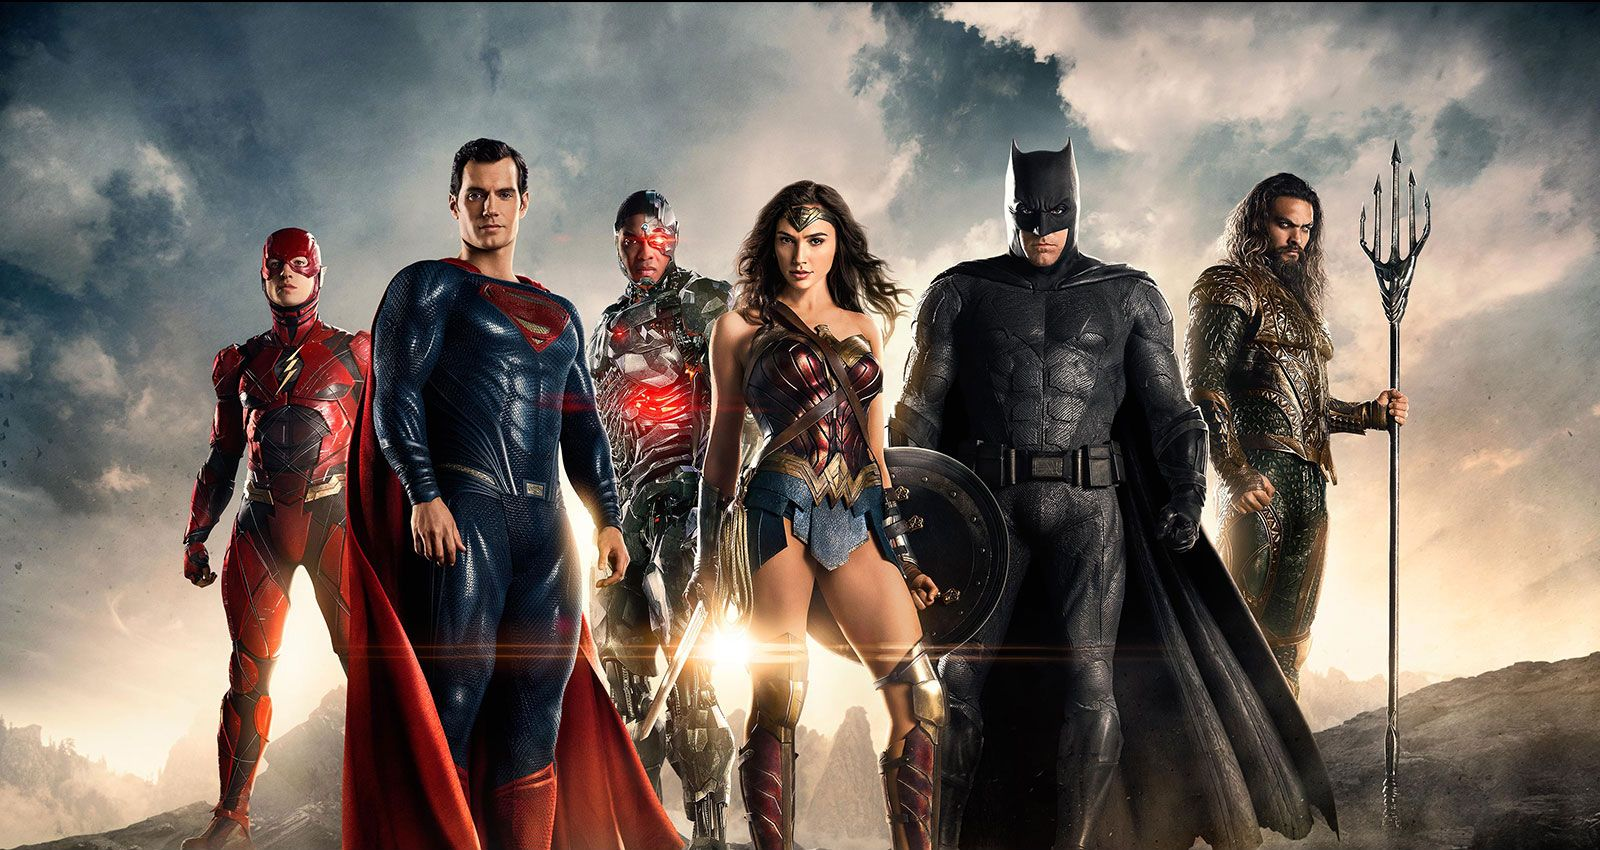 Will 'Justice League' Be Any Good? CGI-Heavy New Trailer Worries Fans